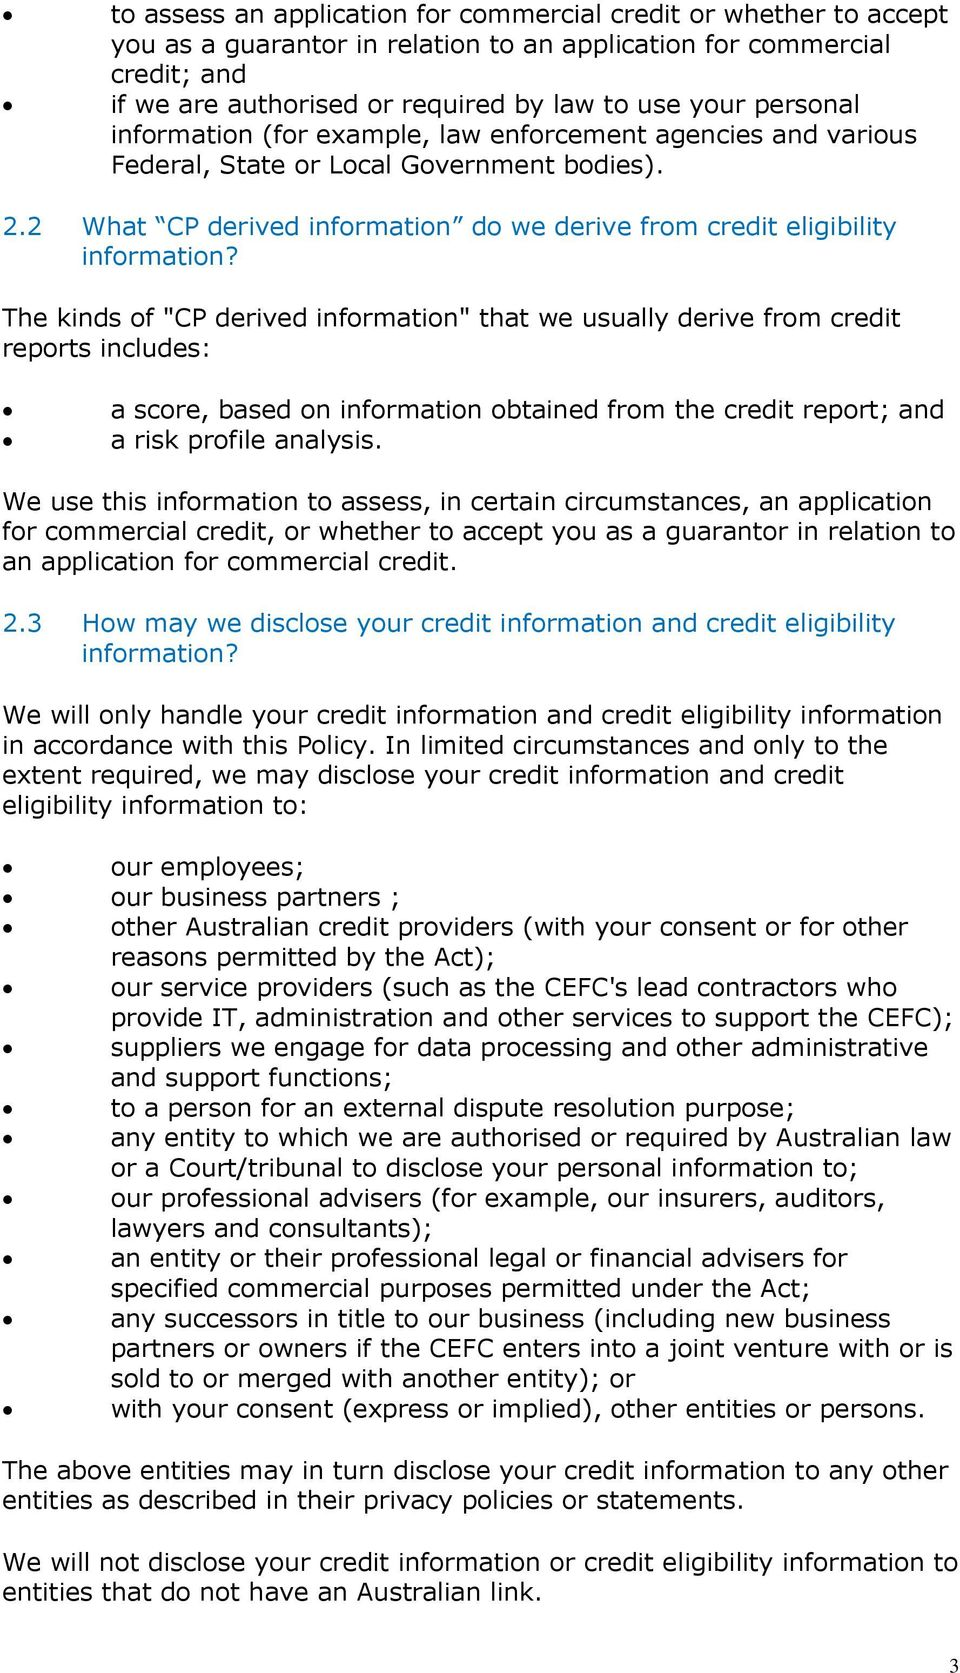 "The kinds of ""CP derived information"" that we usually derive from credit reports includes: a score, based on information obtained from the credit report; and a risk profile analysis."